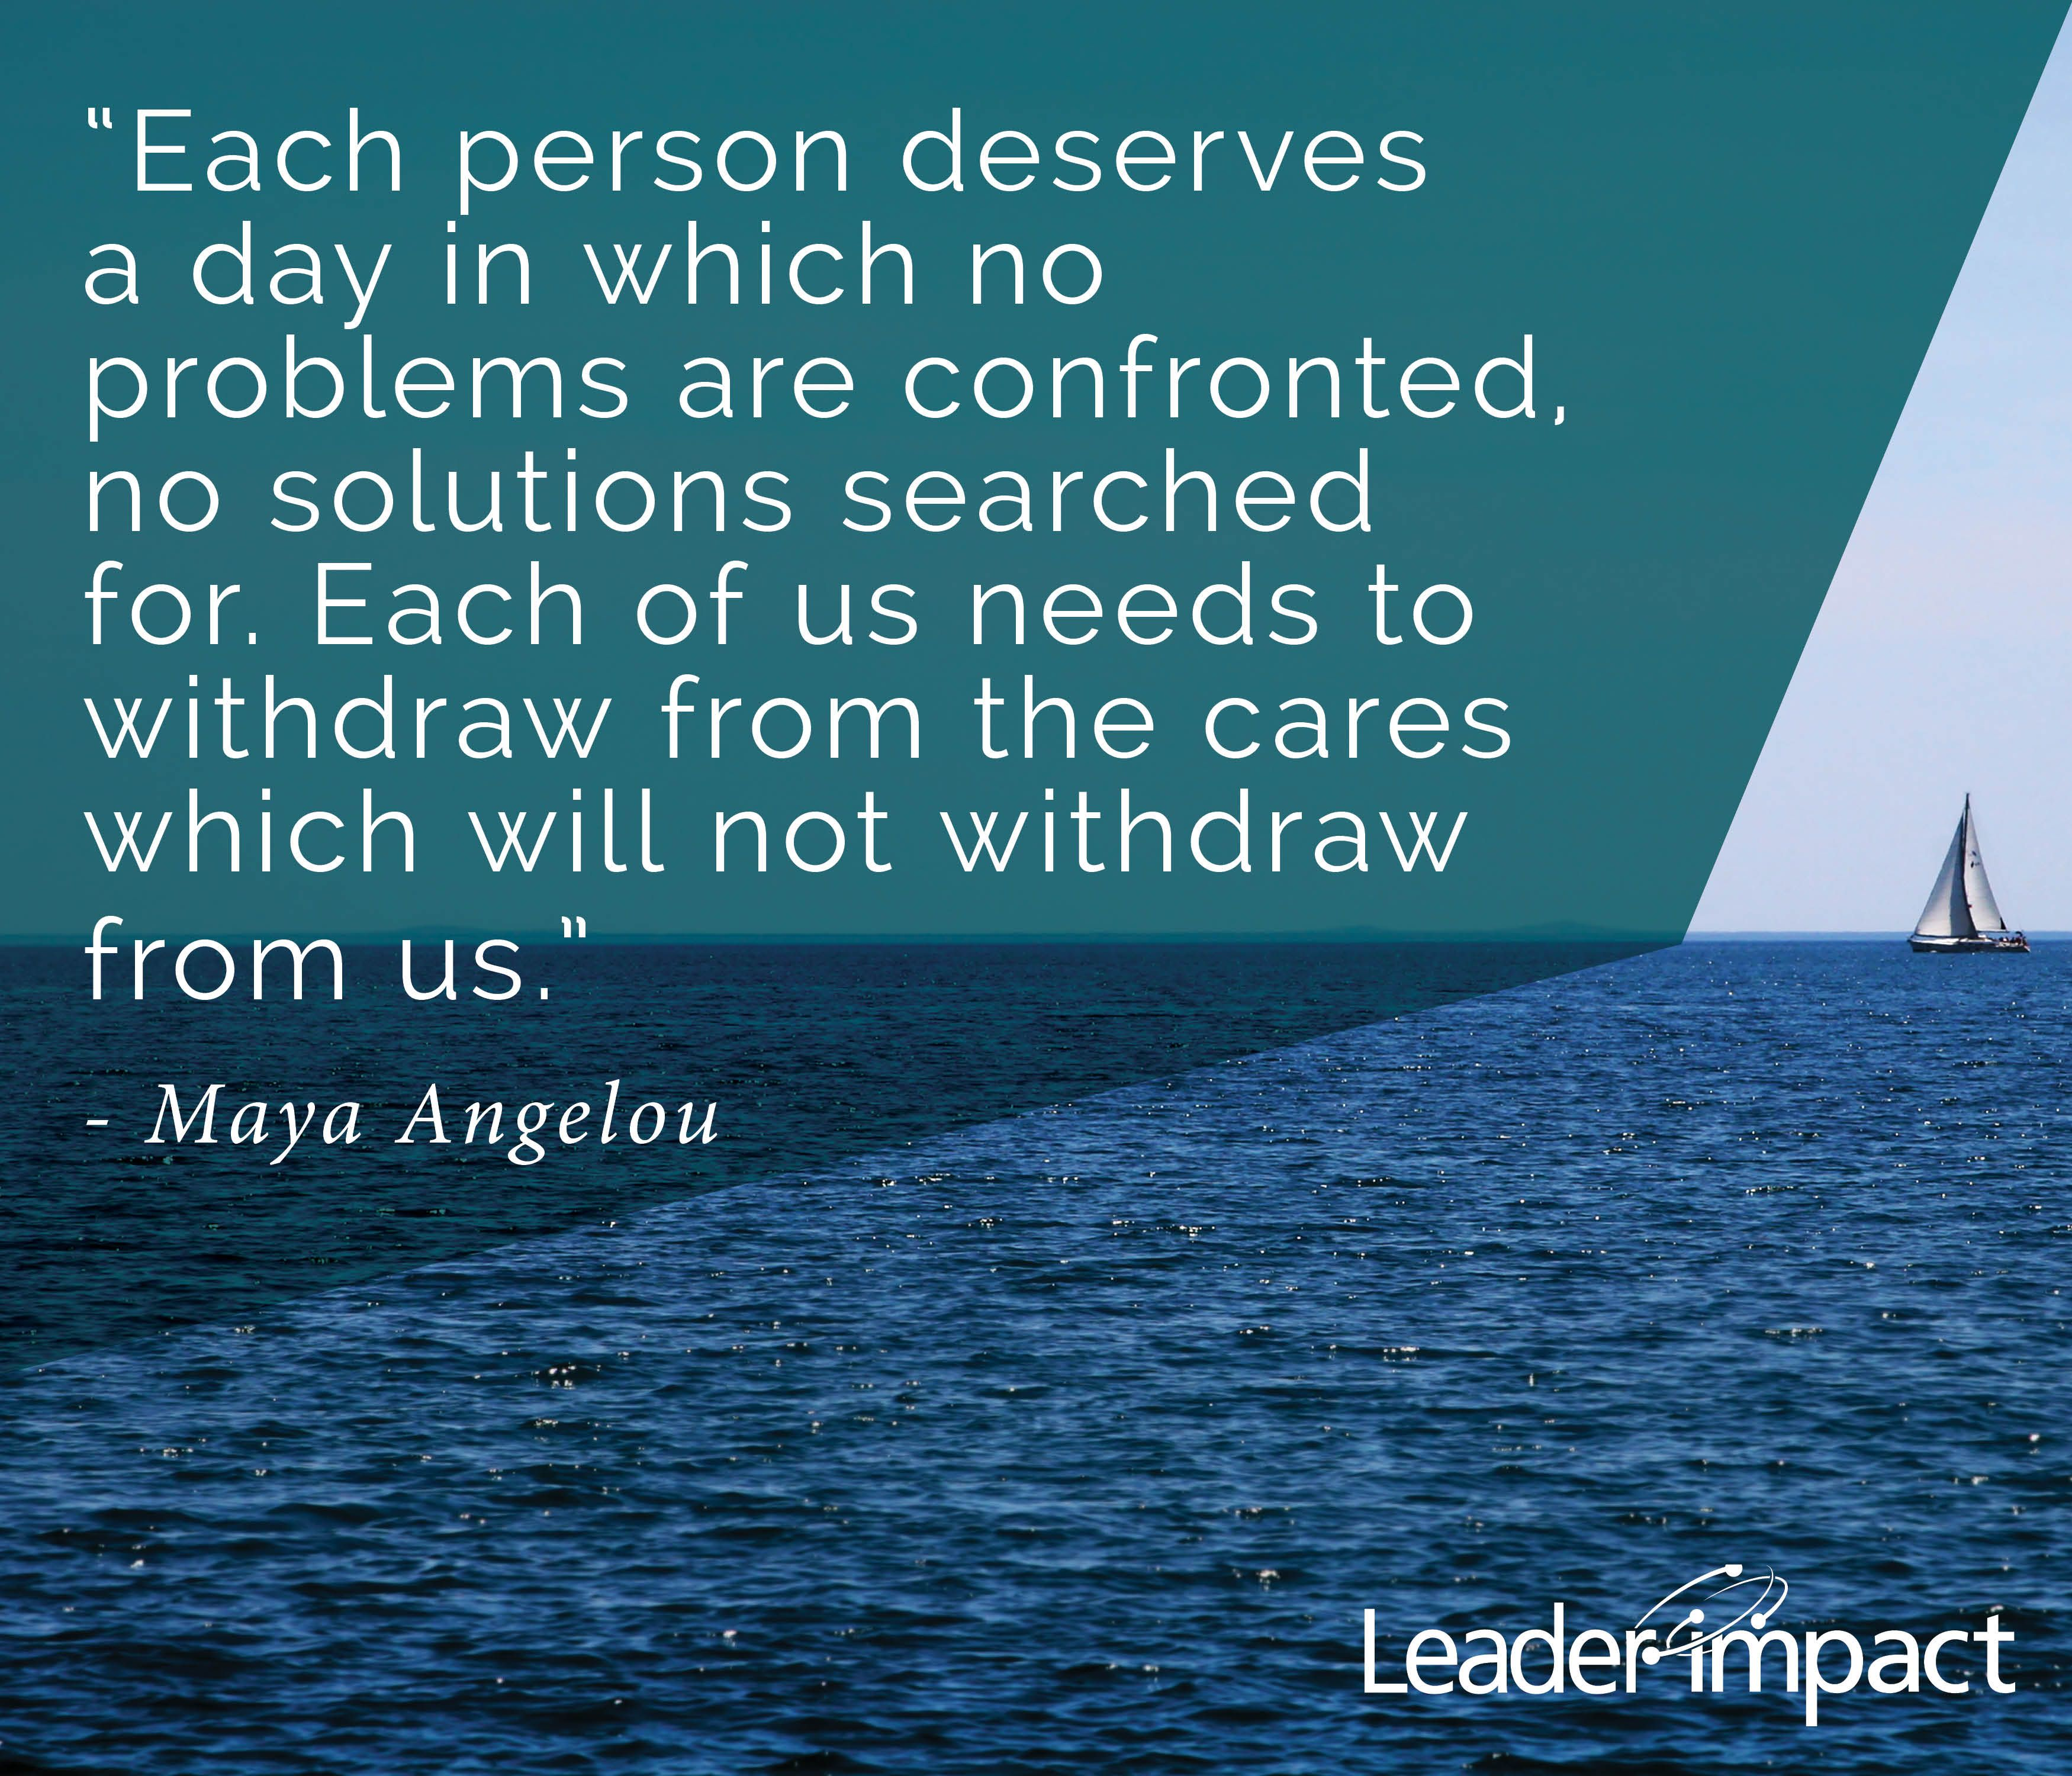 Quotes On Leadership A Day Of Rest Is Important For Everyone Including Leaders